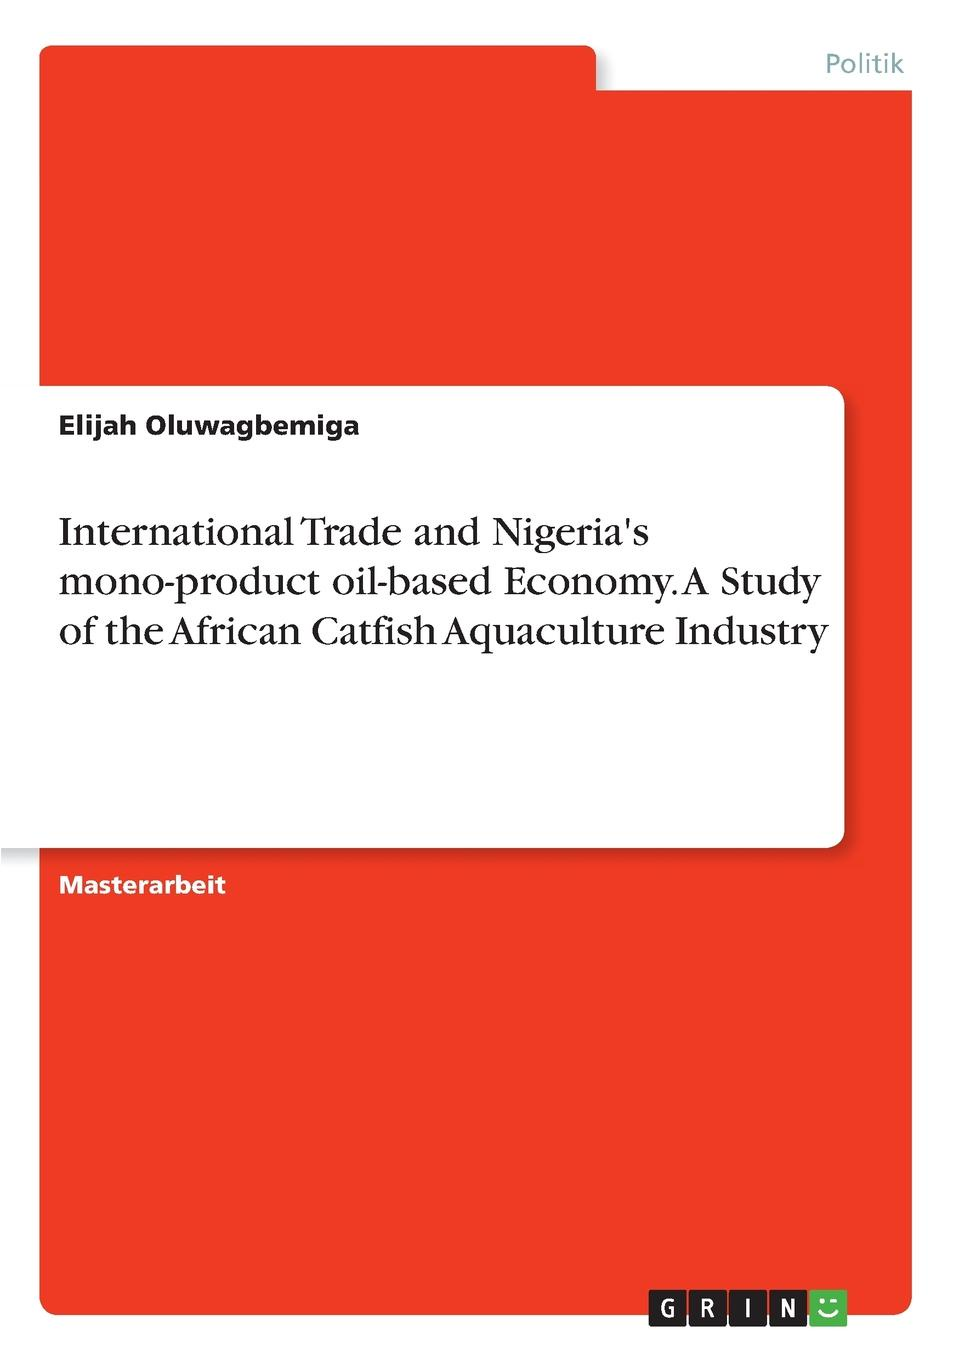 Elijah Oluwagbemiga International Trade and Nigeria.s mono-product oil-based Economy. A Study of the African Catfish Aquaculture Industry недорго, оригинальная цена